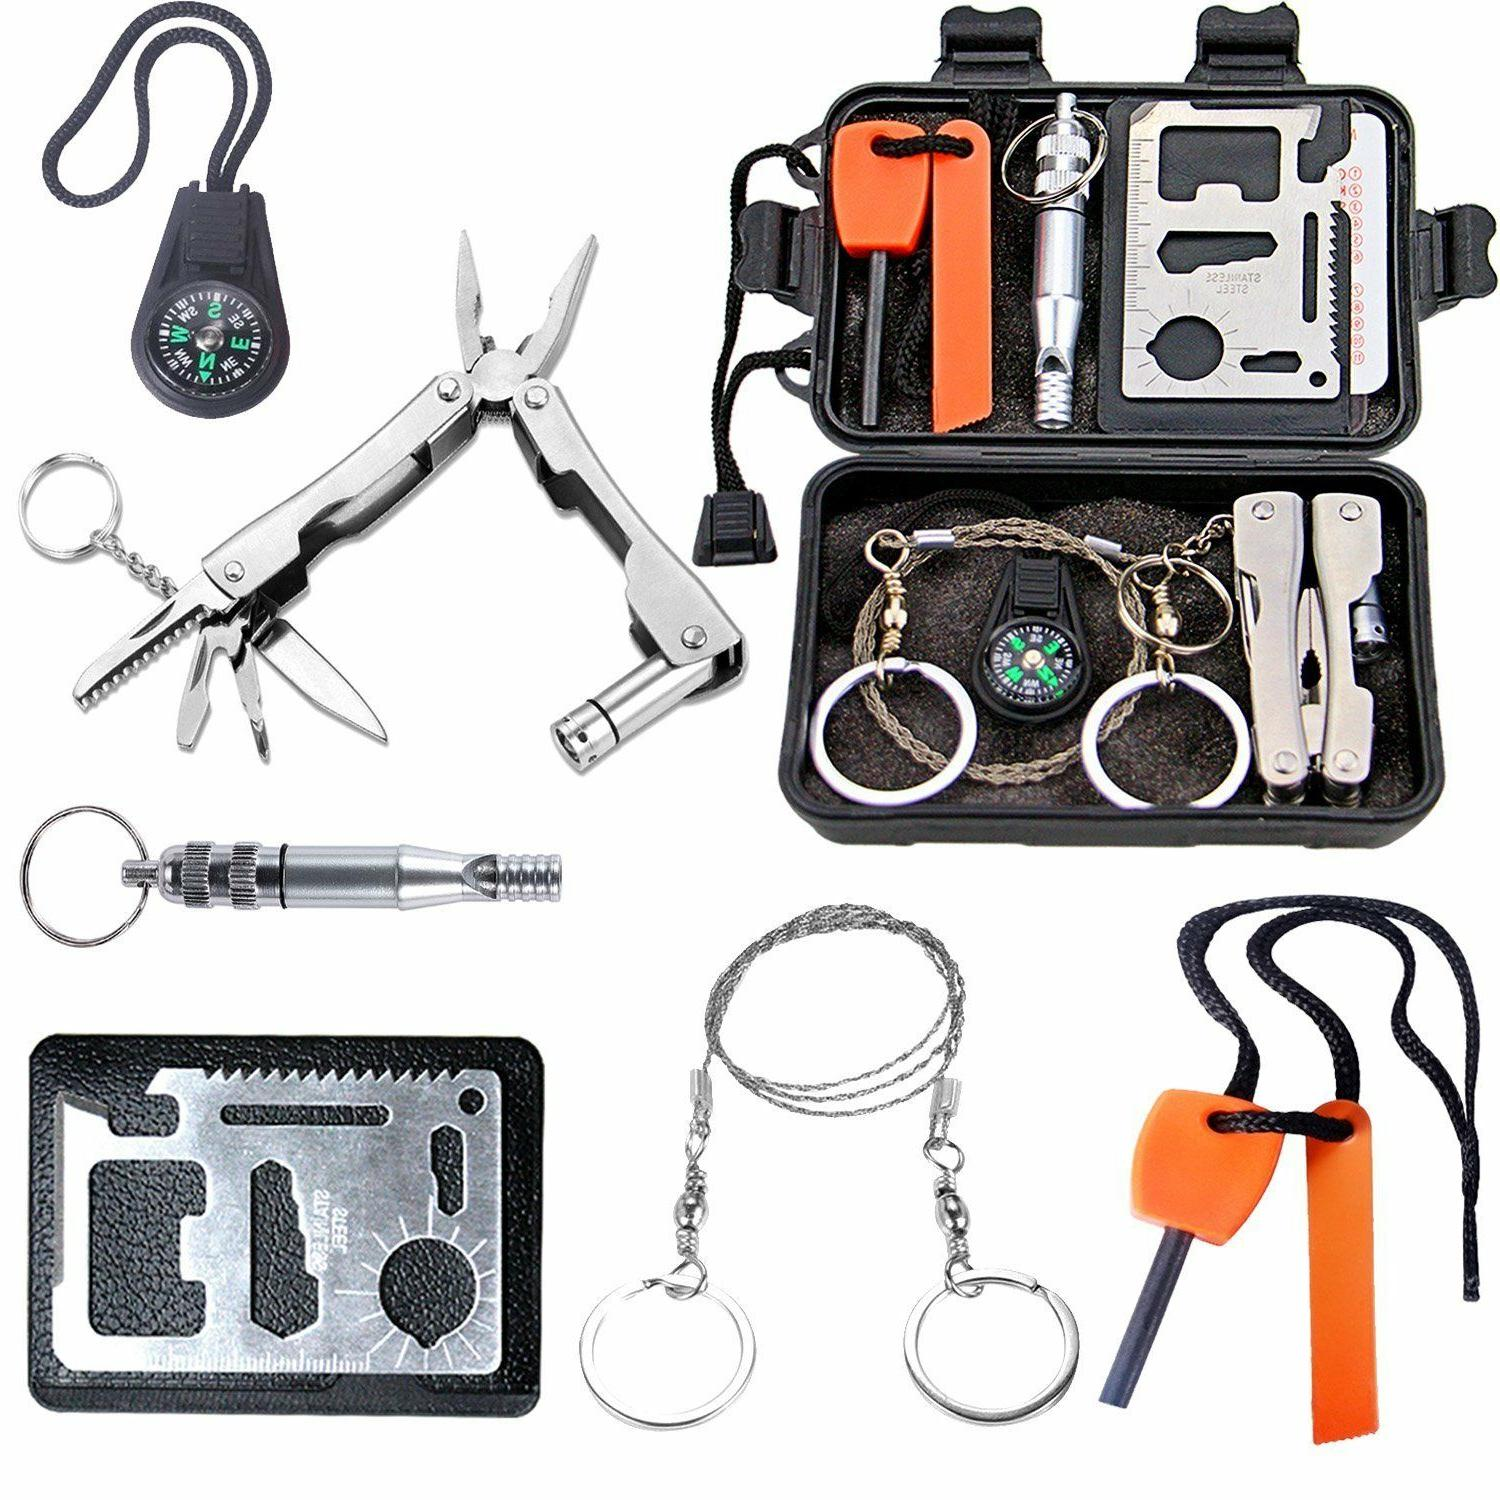 Emergency Survival Kit Outdoor Gear Camping Hiking Travel Di